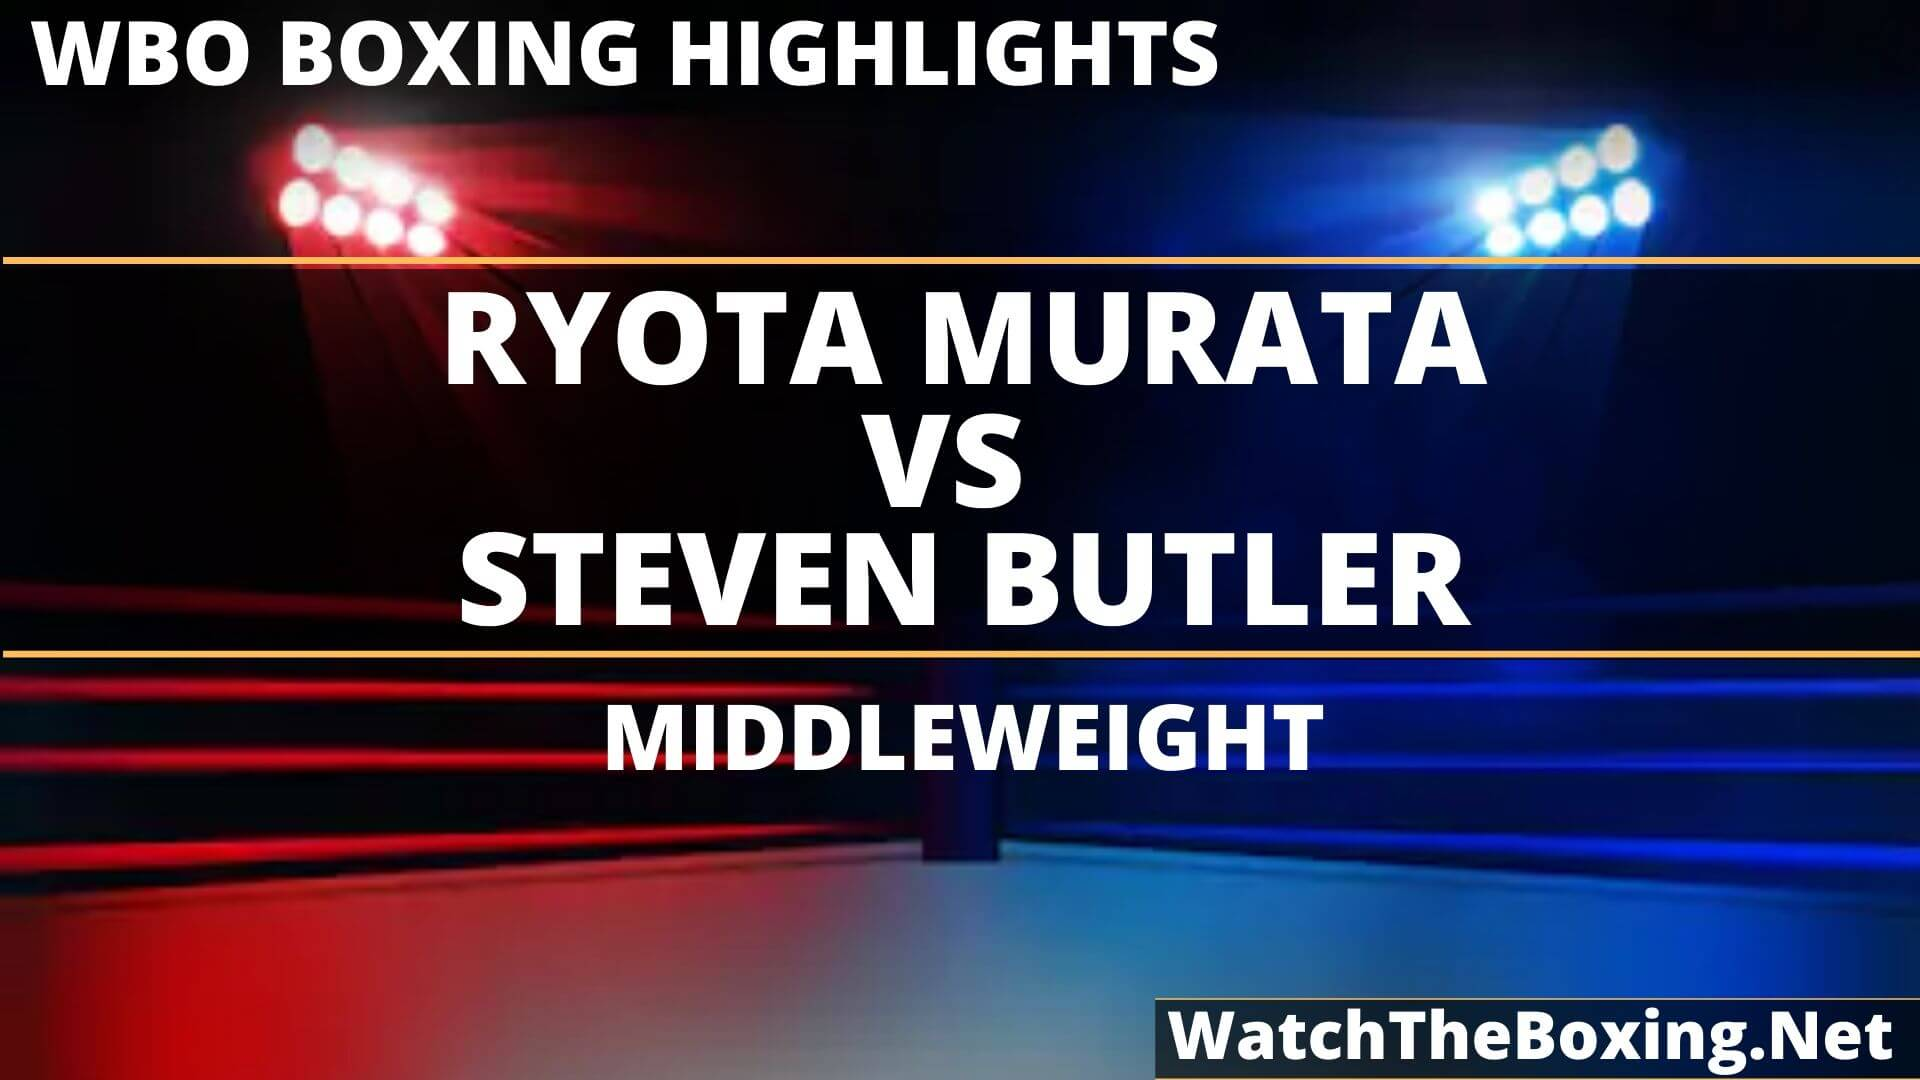 Ryota Murata Vs Steven Butler Highlights 2019